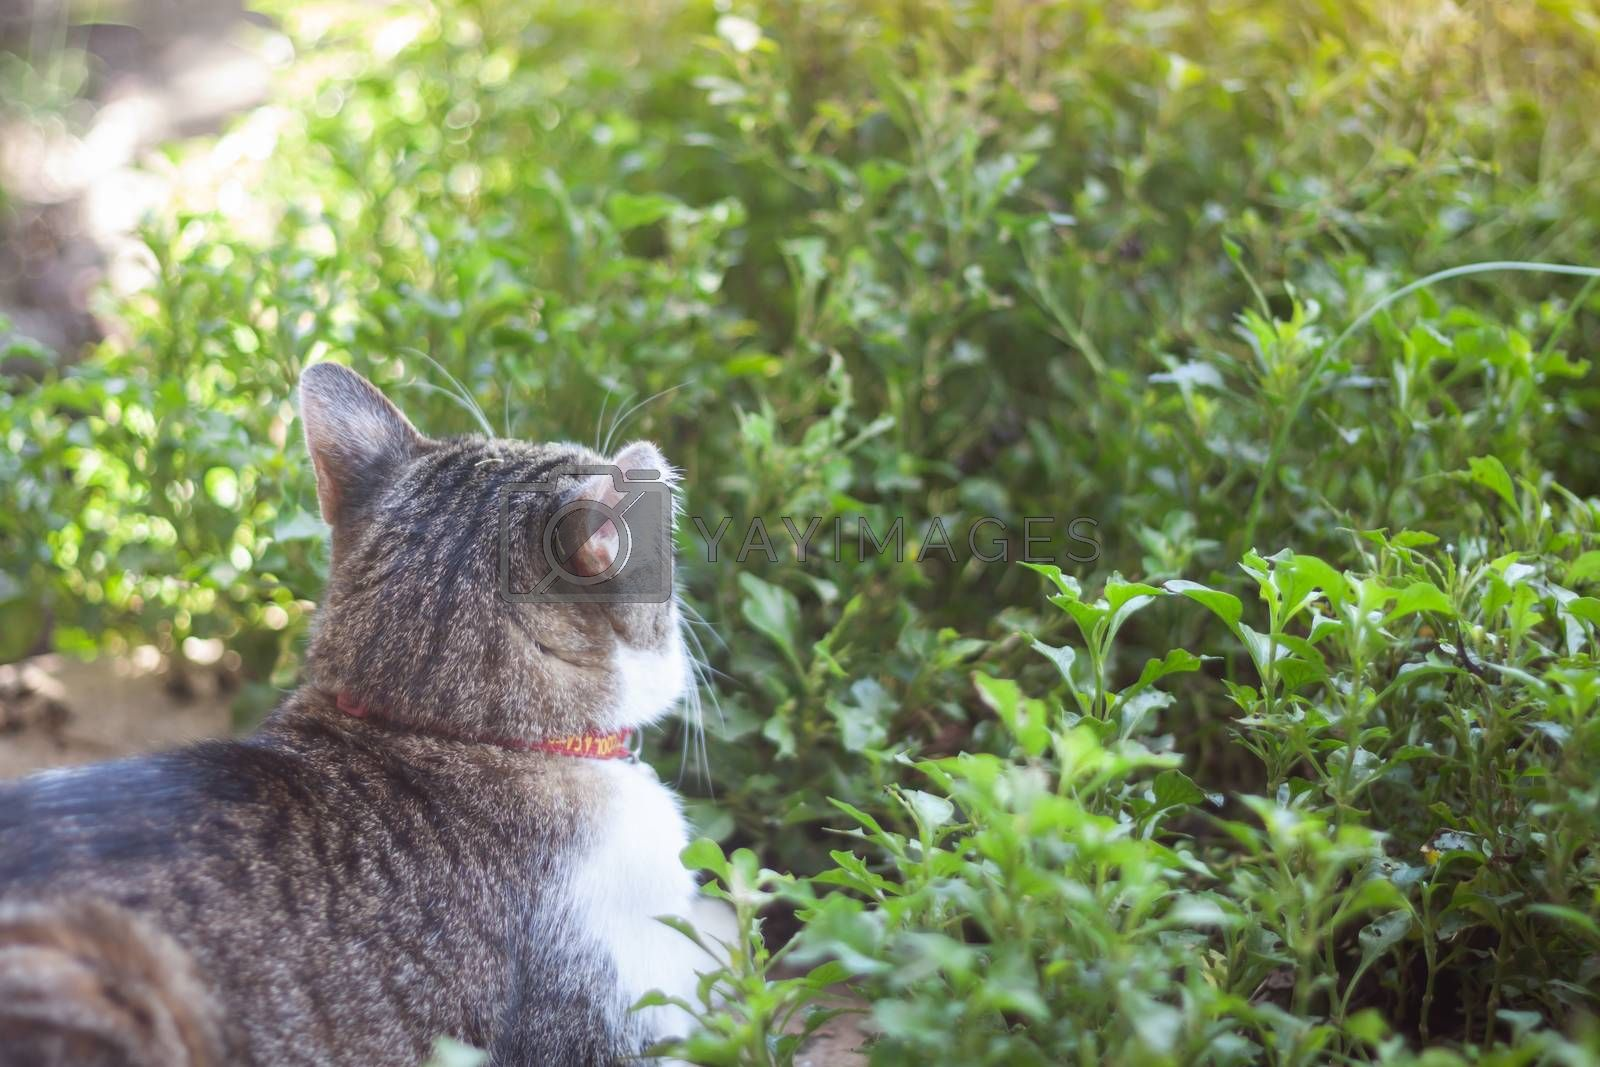 Thai cat chill in garden home, stock photo